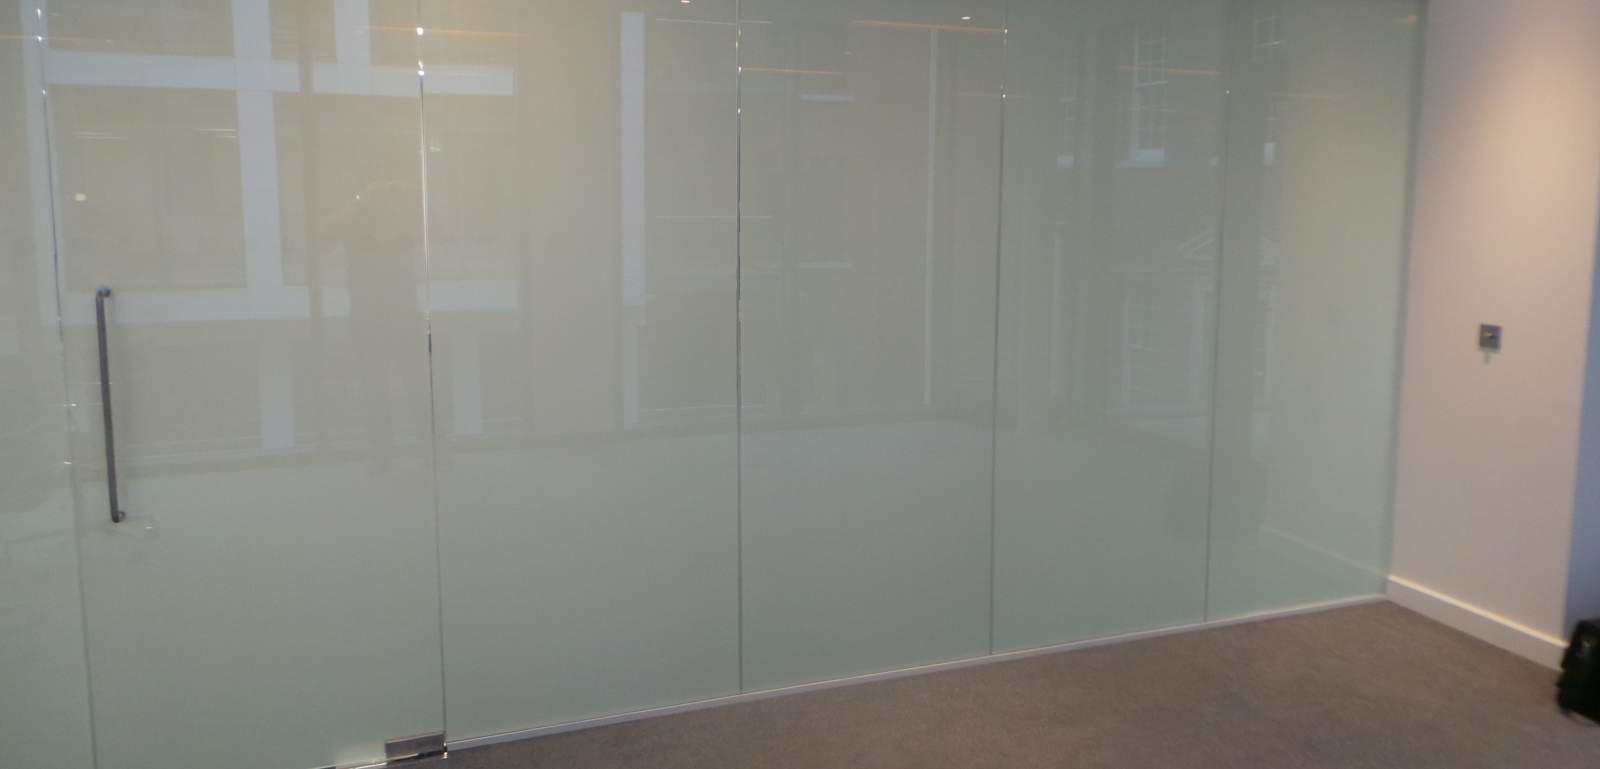 ELECTRIC GLASS PARTITION LONDON.jpg